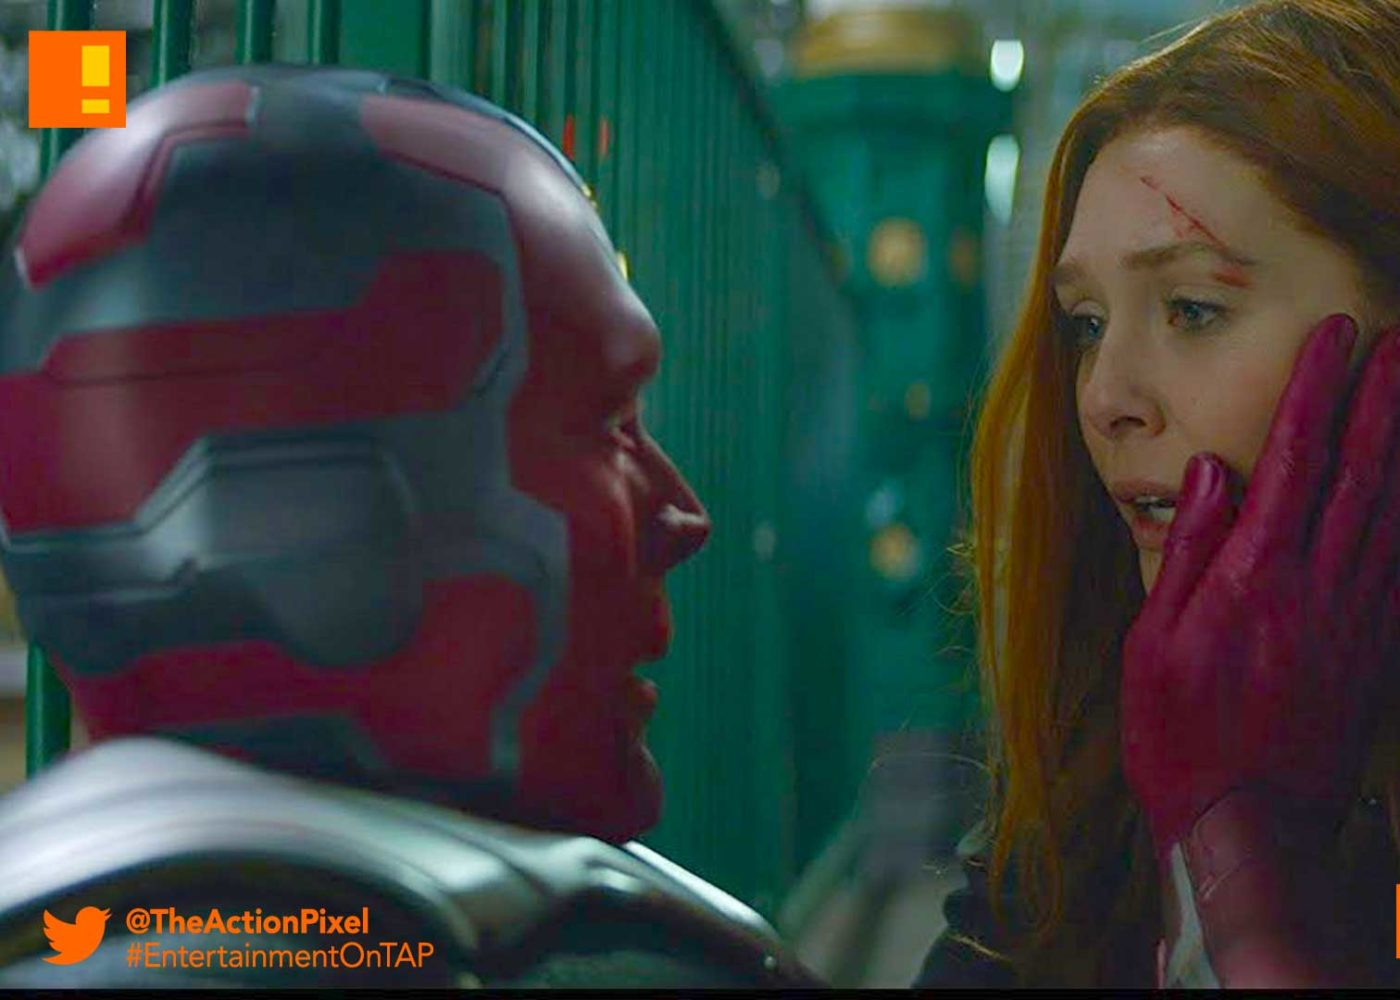 scarlet witch, vision, marvel, disney+ tv series, avengers, infinity war, the action pixel, entertainment on tap,